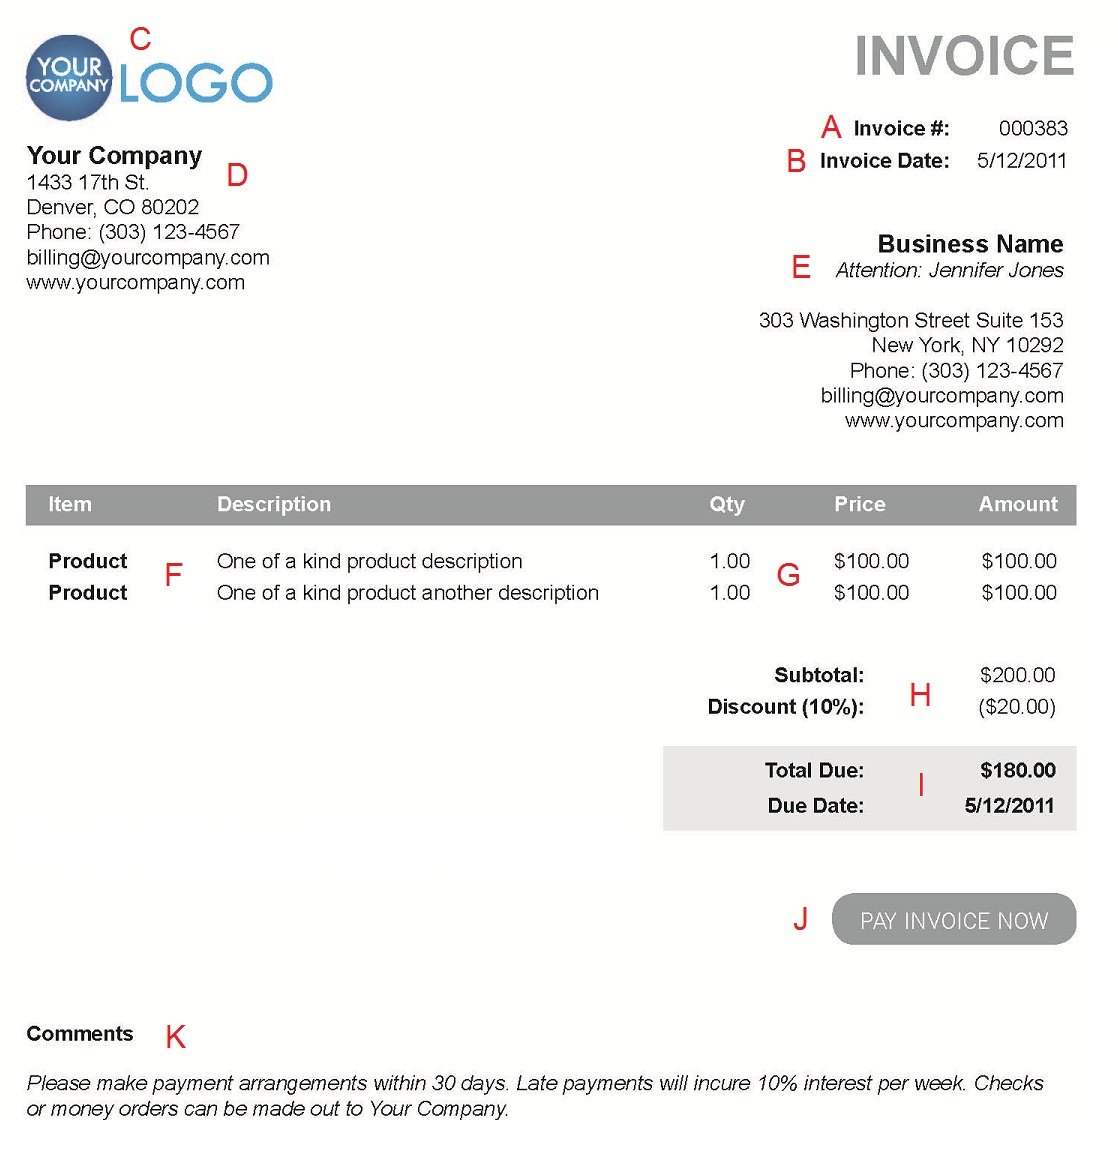 Pigbrotherus  Pleasing The  Different Sections Of An Electronic Payment Invoice With Engaging A  With Cool Format Of An Invoice Also Invoice Proforma Word In Addition Invoice Format Uk And Invoice Discounting Jobs As Well As Quotation Purchase Order Invoice Additionally Make Online Invoice From Paysimplecom With Pigbrotherus  Engaging The  Different Sections Of An Electronic Payment Invoice With Cool A  And Pleasing Format Of An Invoice Also Invoice Proforma Word In Addition Invoice Format Uk From Paysimplecom